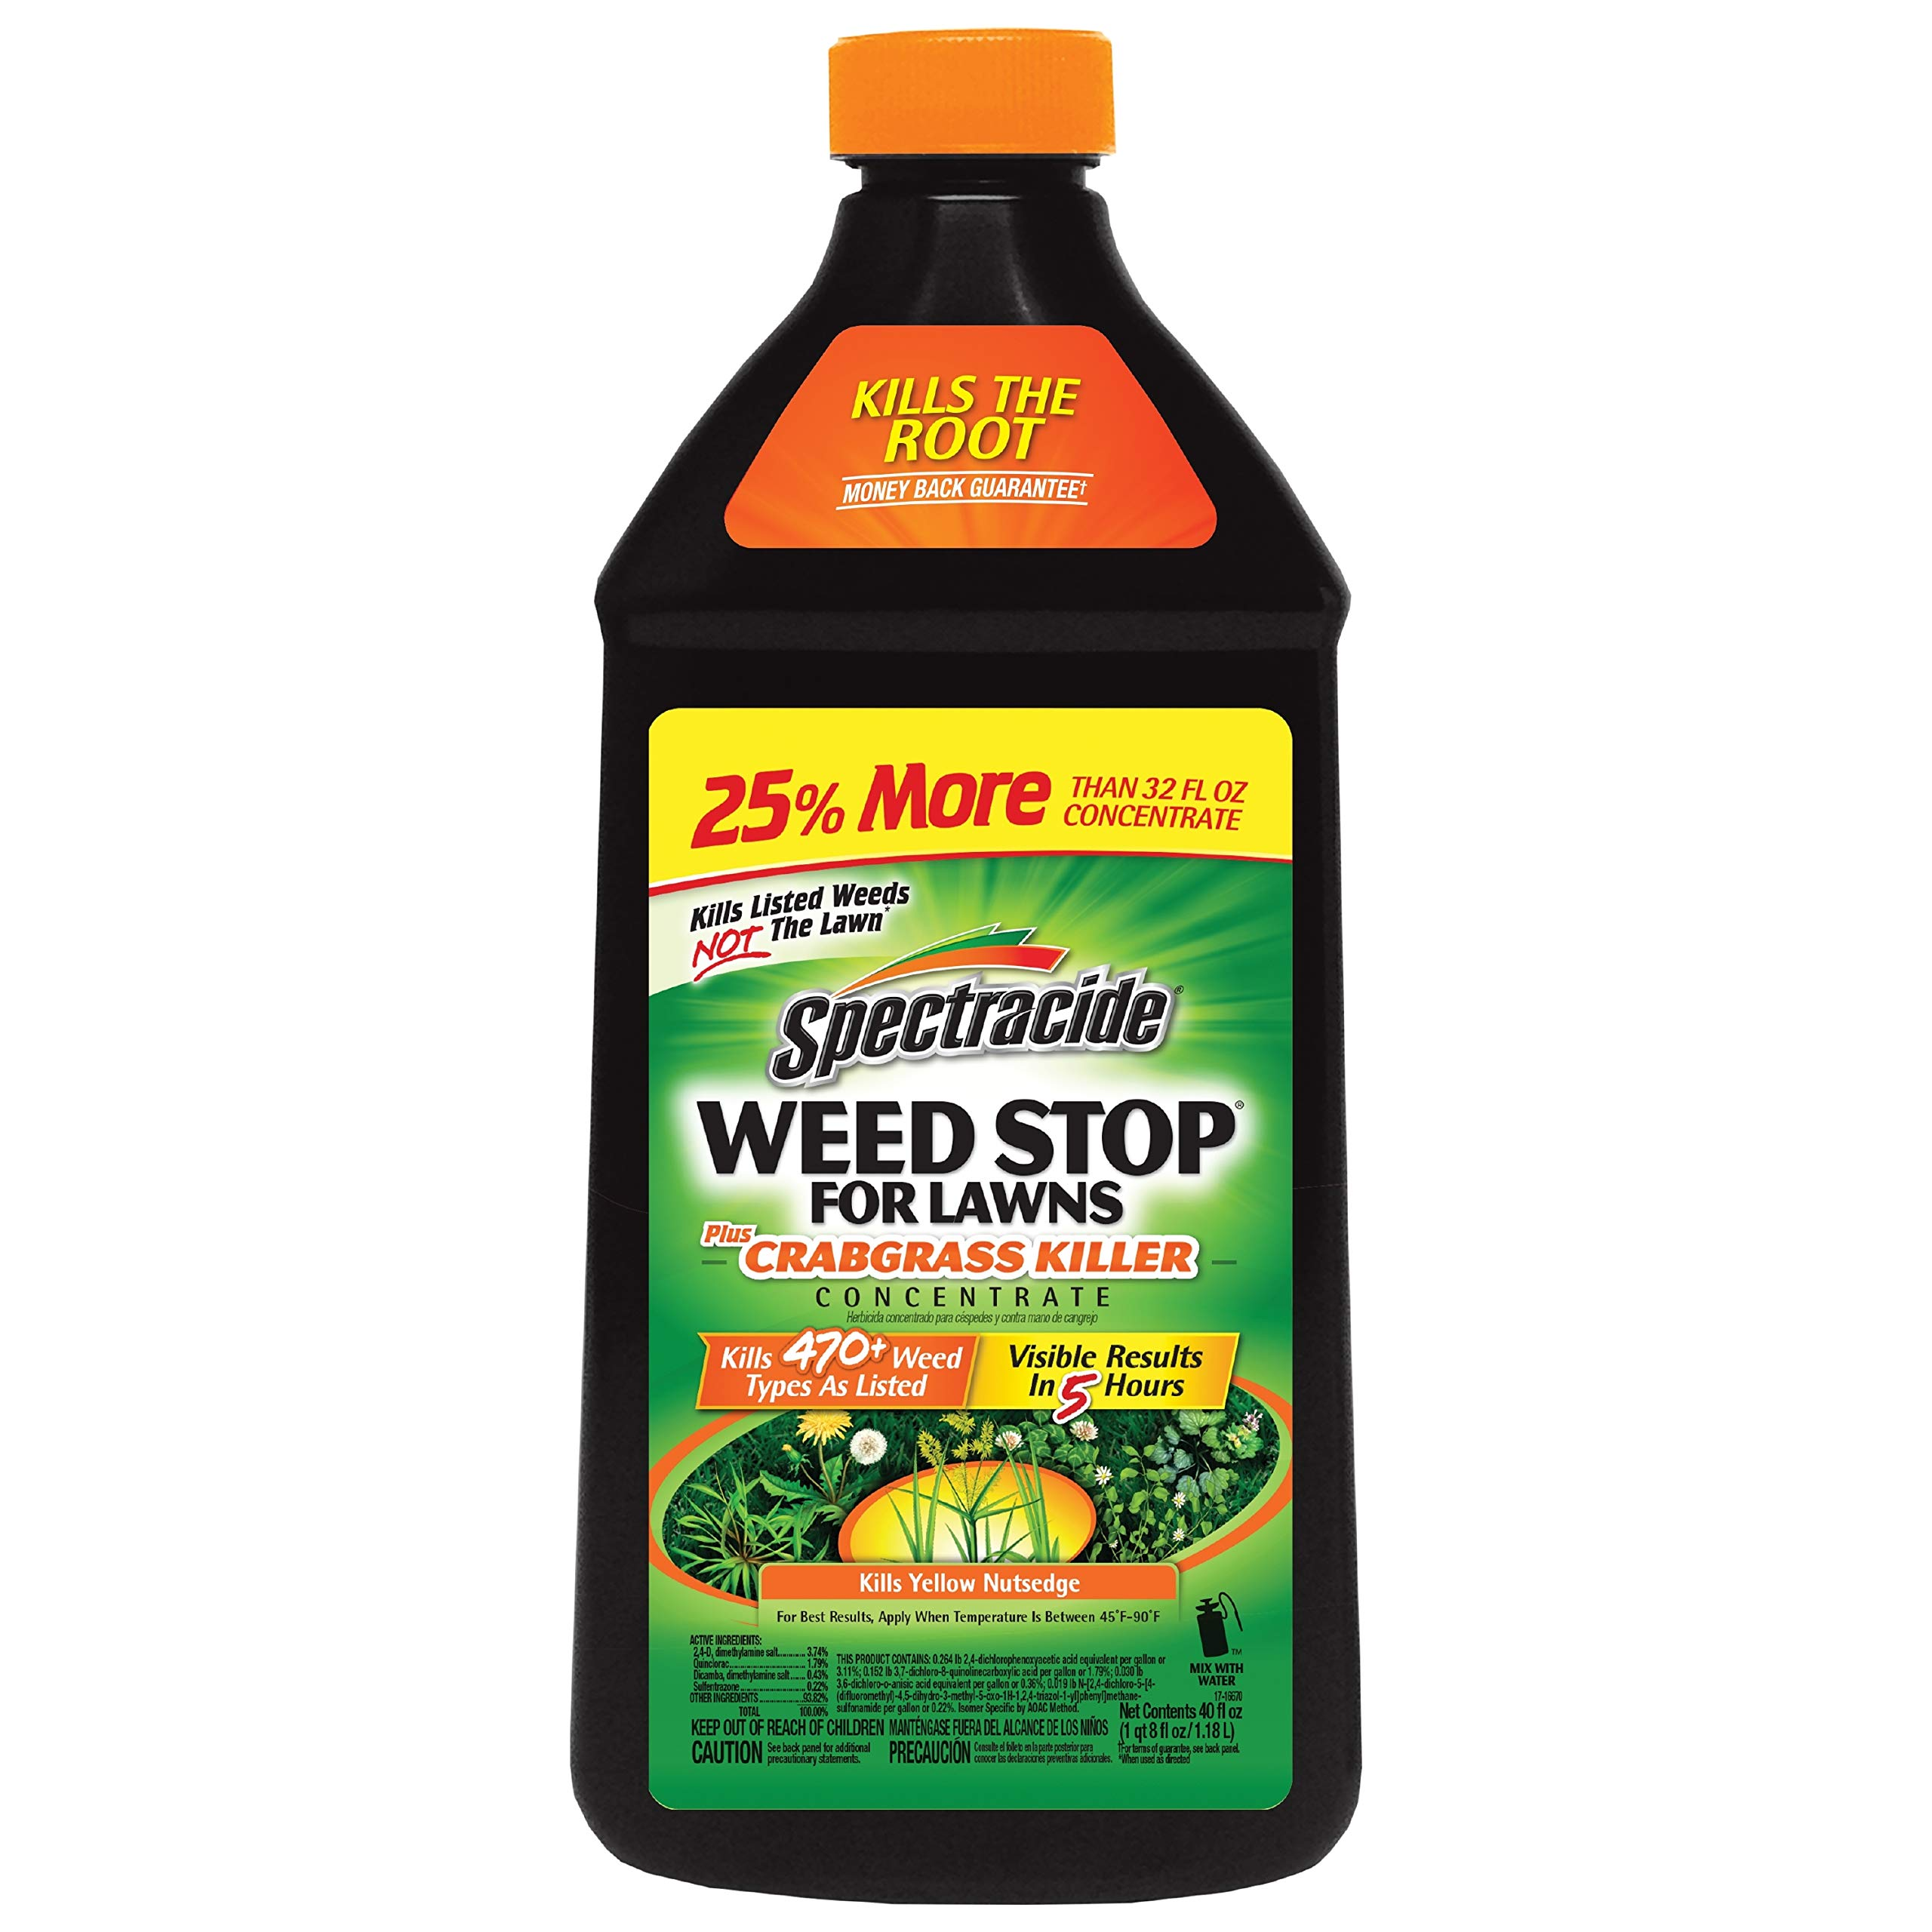 Spectracide HG-96624-1 Stop Weed and Crabgrass Killer, 40 oz, Brown/A